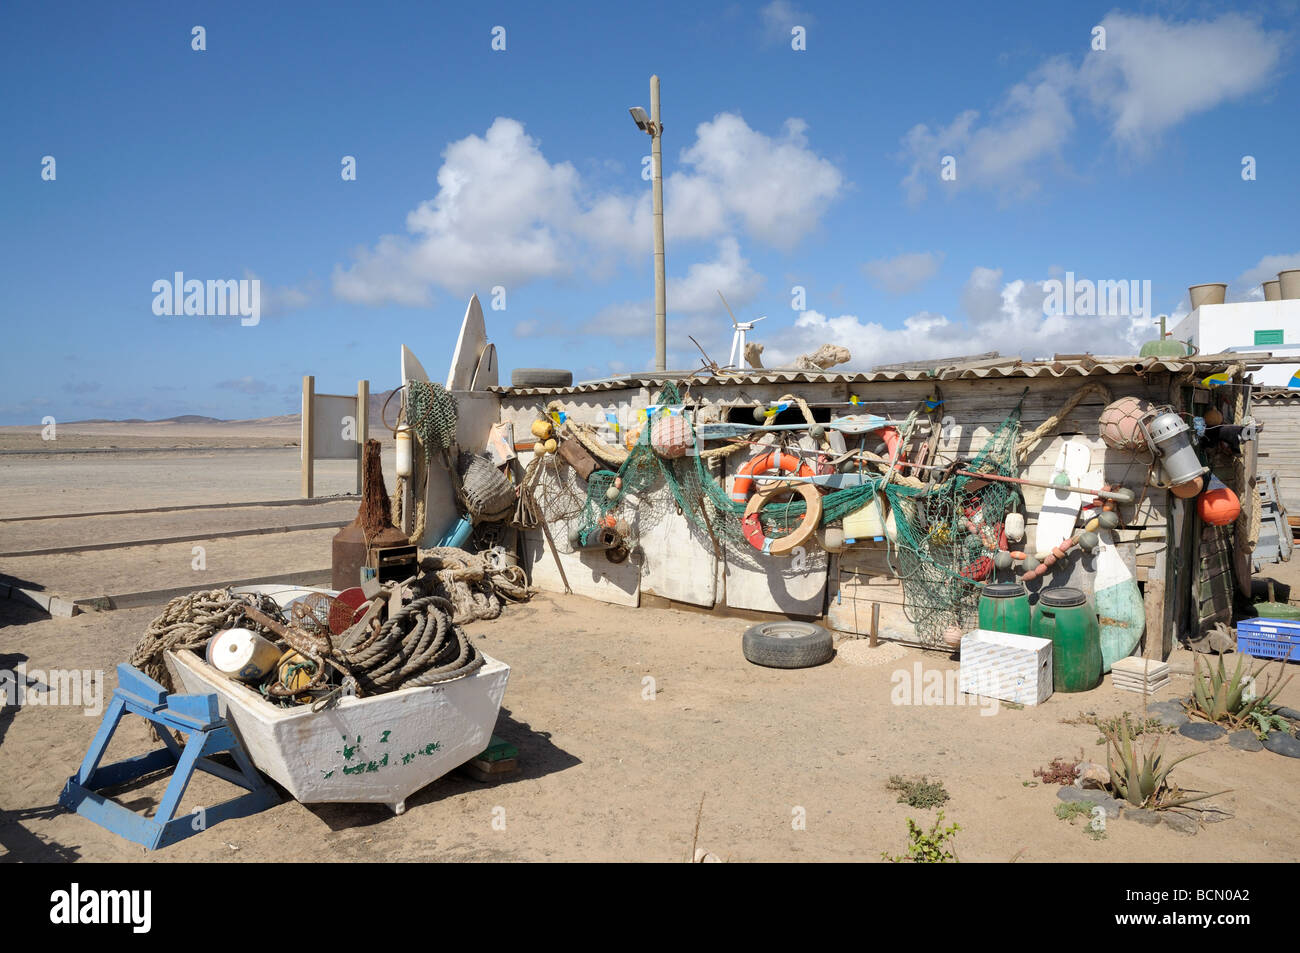 Backyard Of A Fishing Village. Canary Island Fuerteventura, Spain   Stock  Image